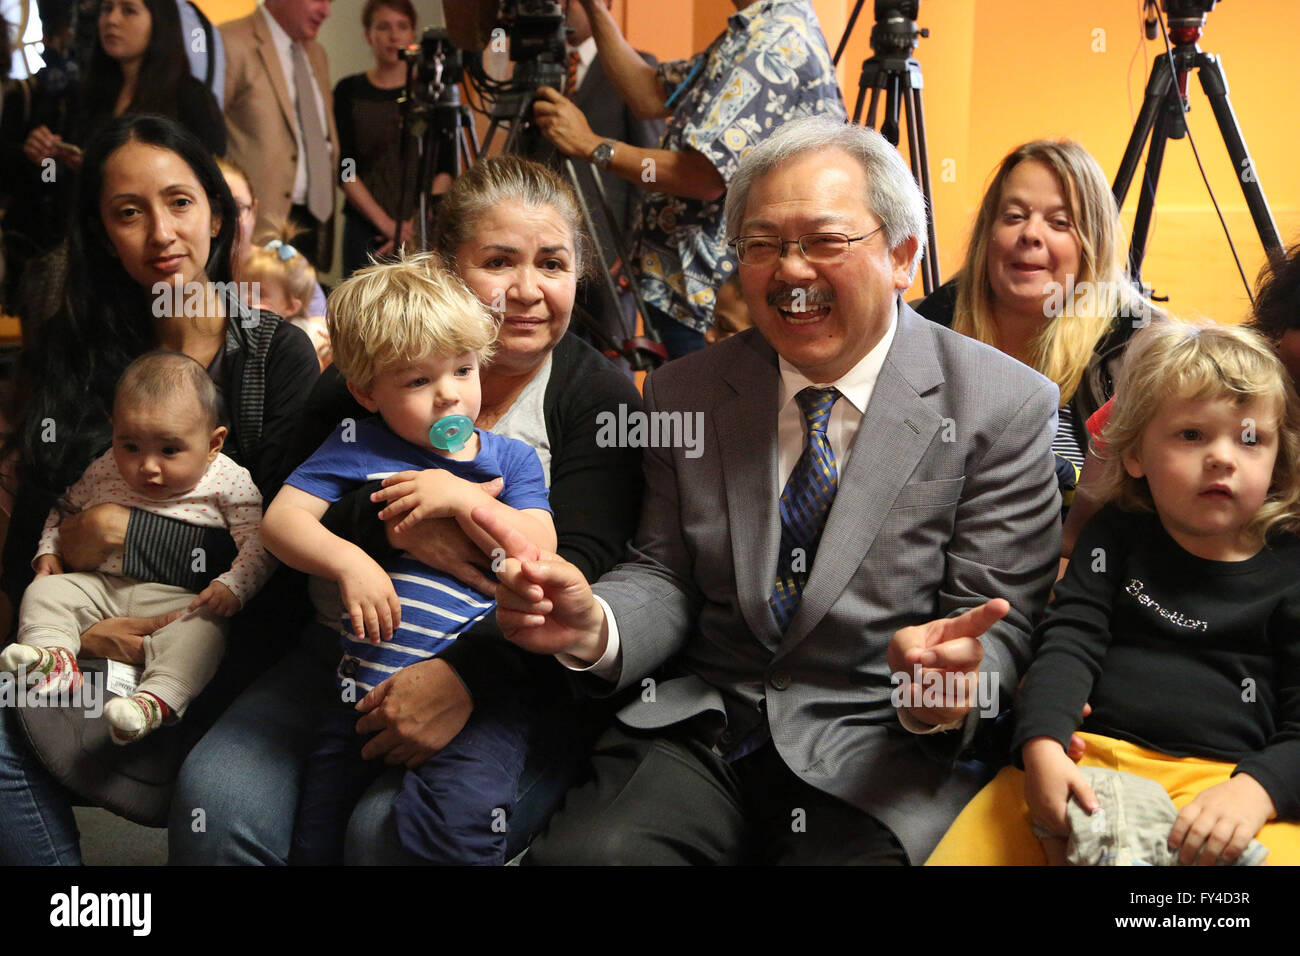 San Francisco, USA. 21st Apr, 2016. San Francisco Mayor Ed Lee interacts with mothers and children after signing - Stock Image